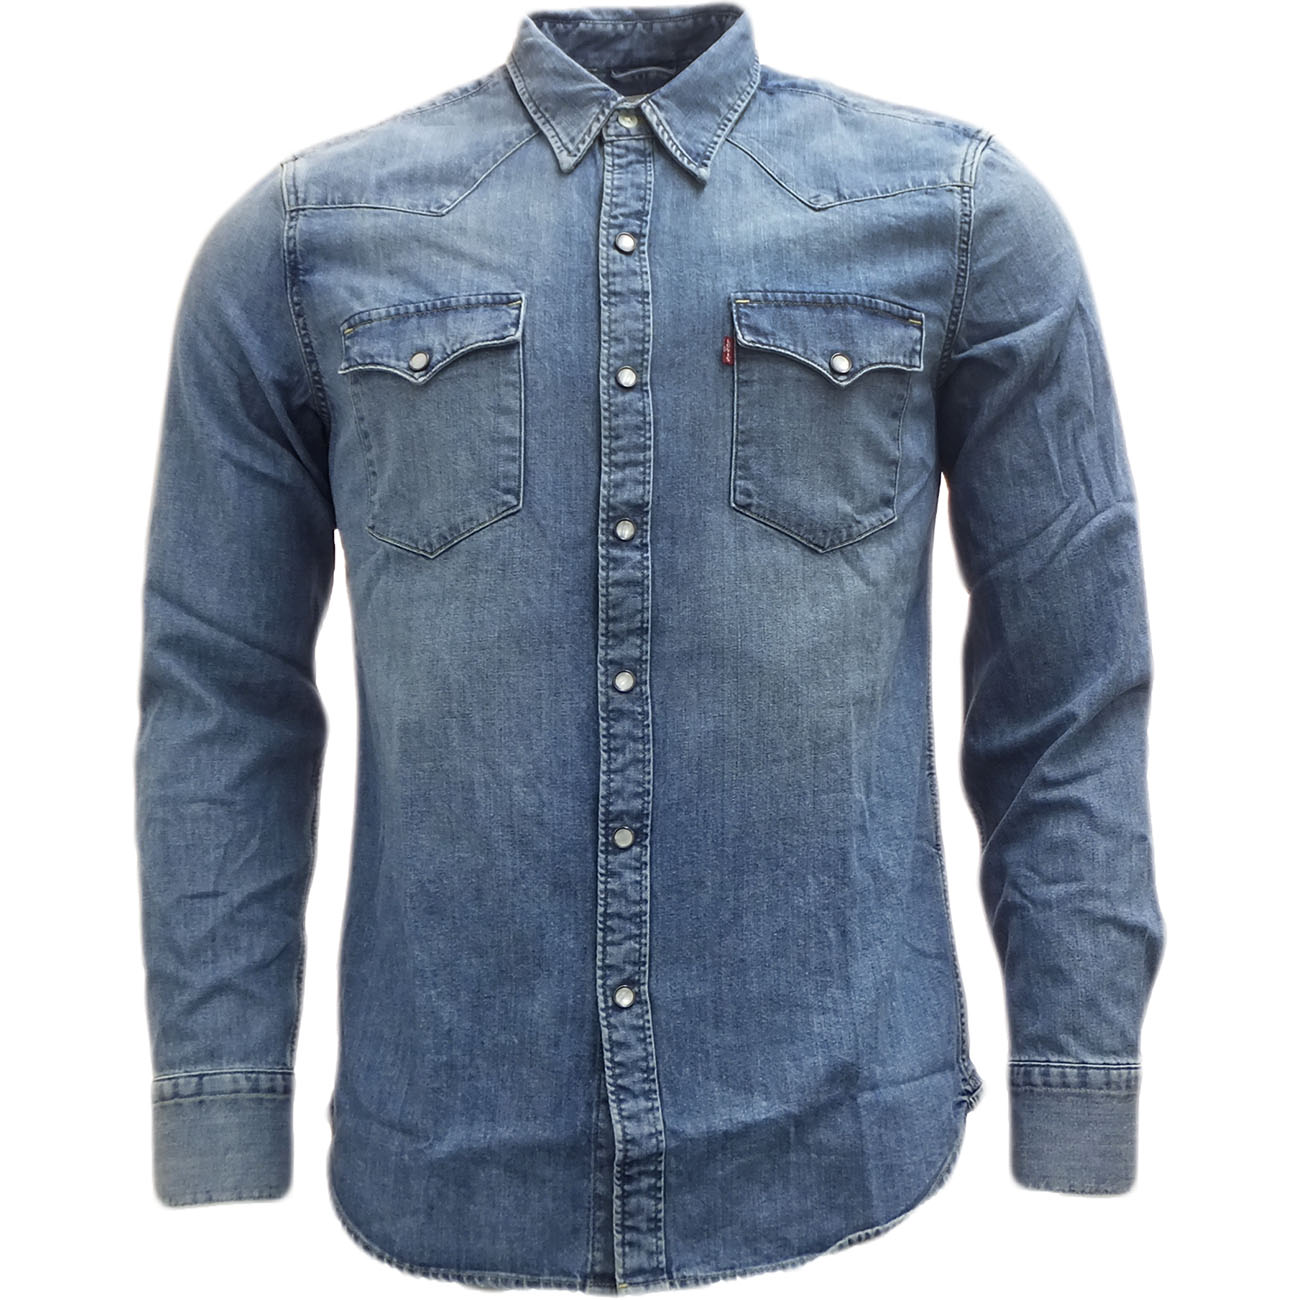 089ec343bad9ae Sentinel Mens Shirts Levi Strauss Long Sleeve Denim Shirt